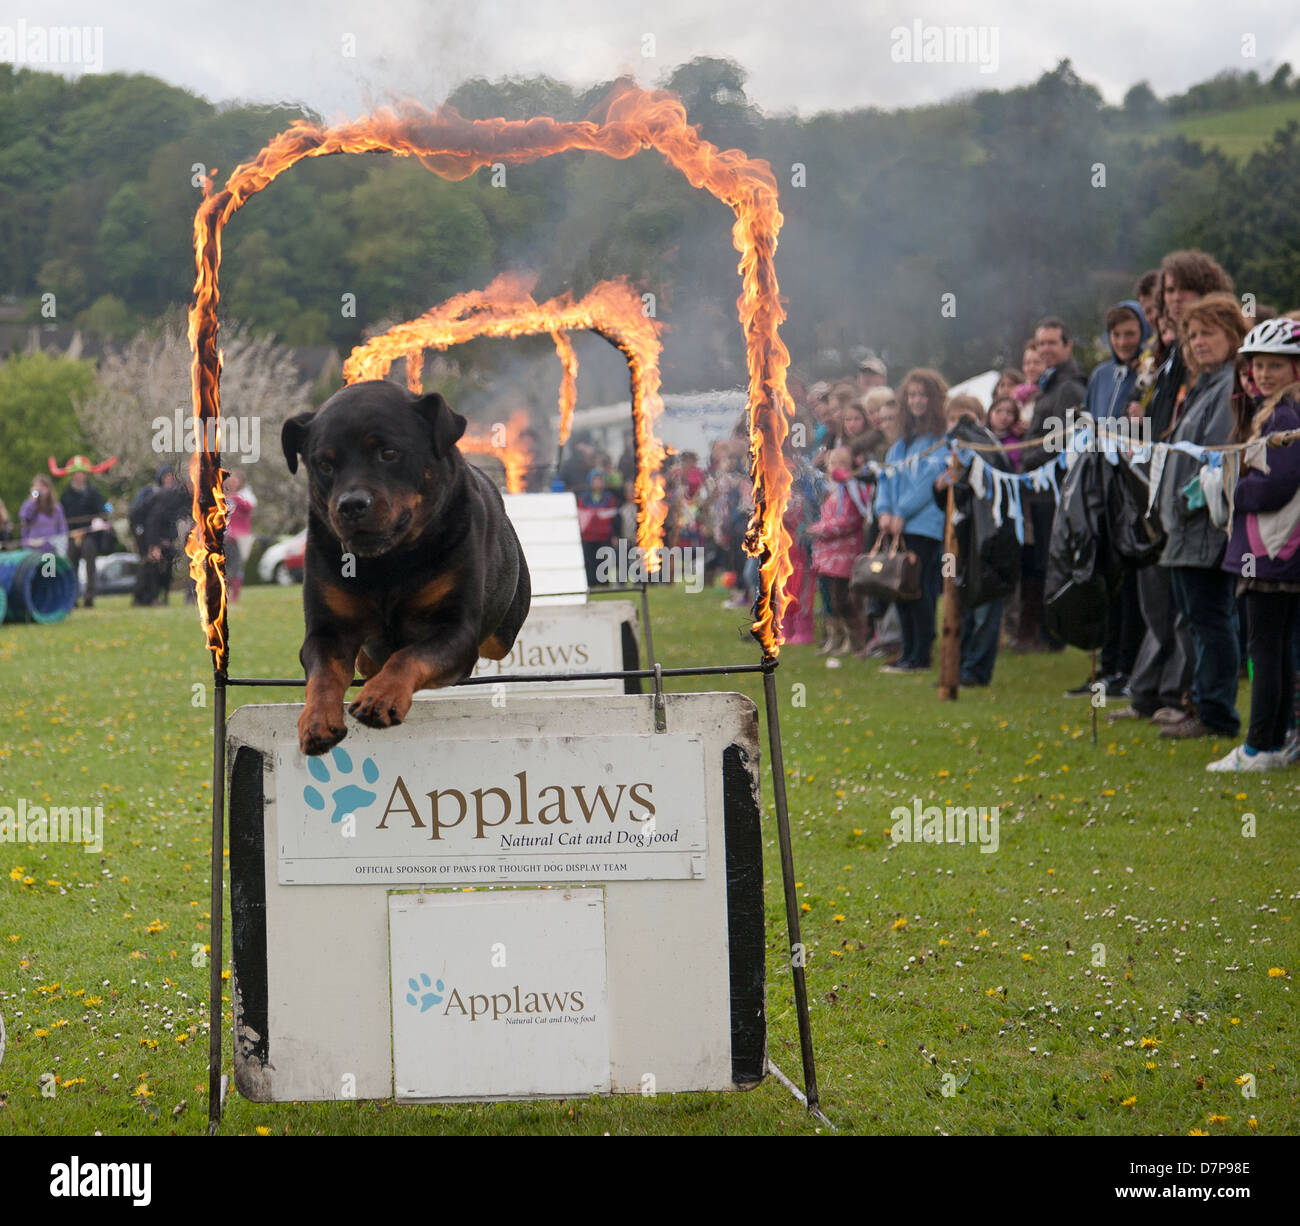 Rottweiler dog jumping through a ring of fire at The Randwick May day Festival Gloucestershire England - Stock Image